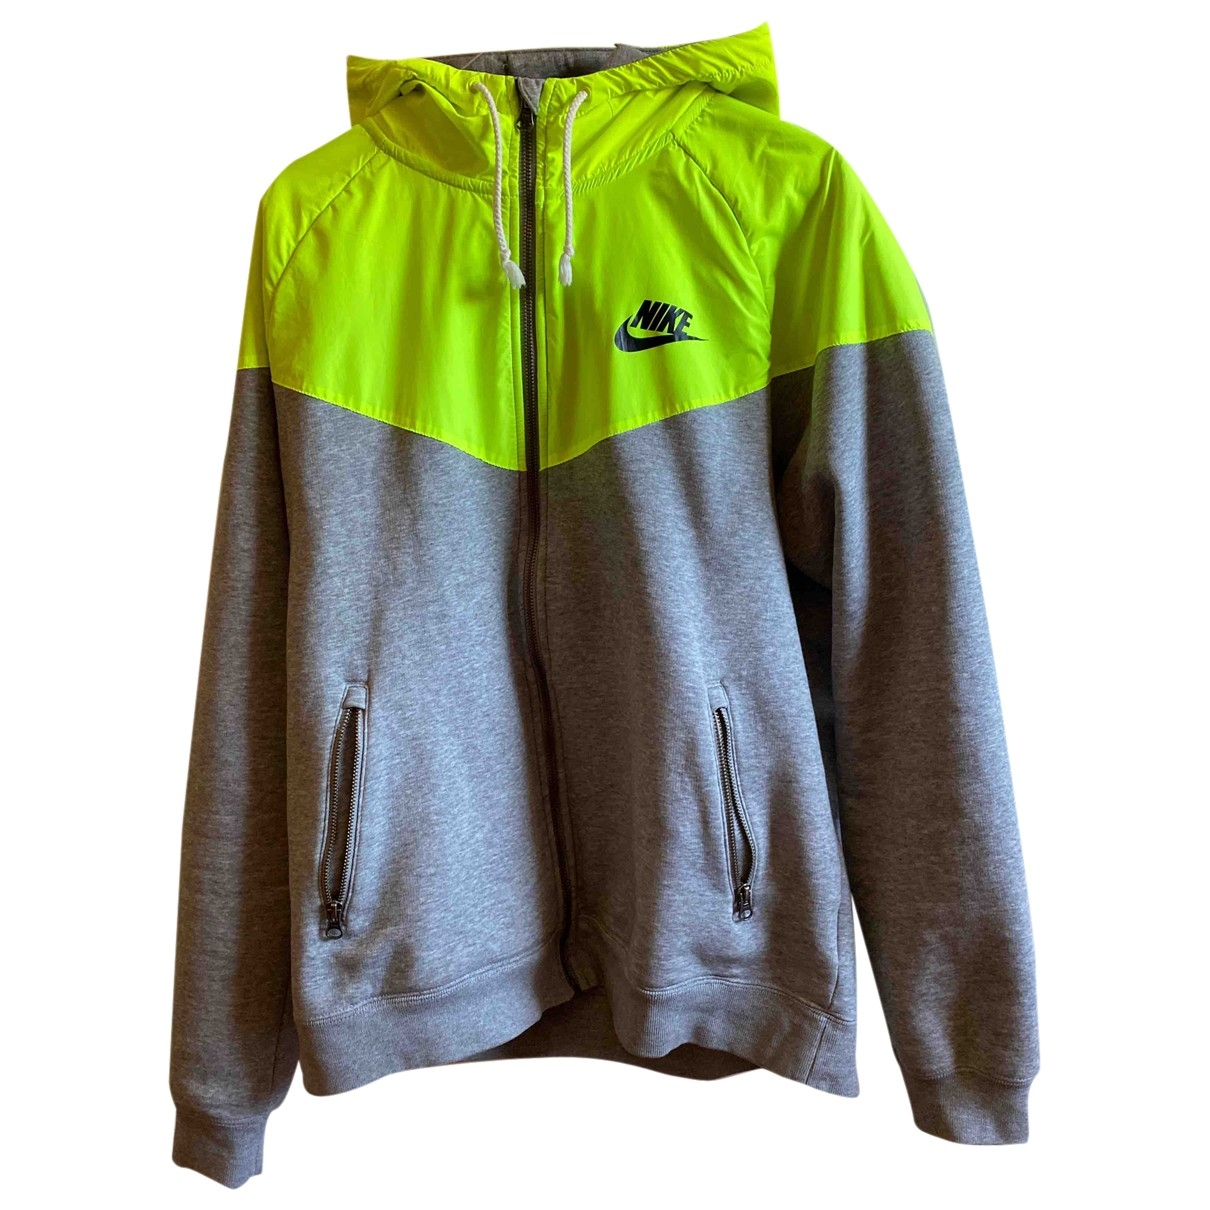 Nike \N Yellow Cotton Knitwear & Sweatshirts for Men L International